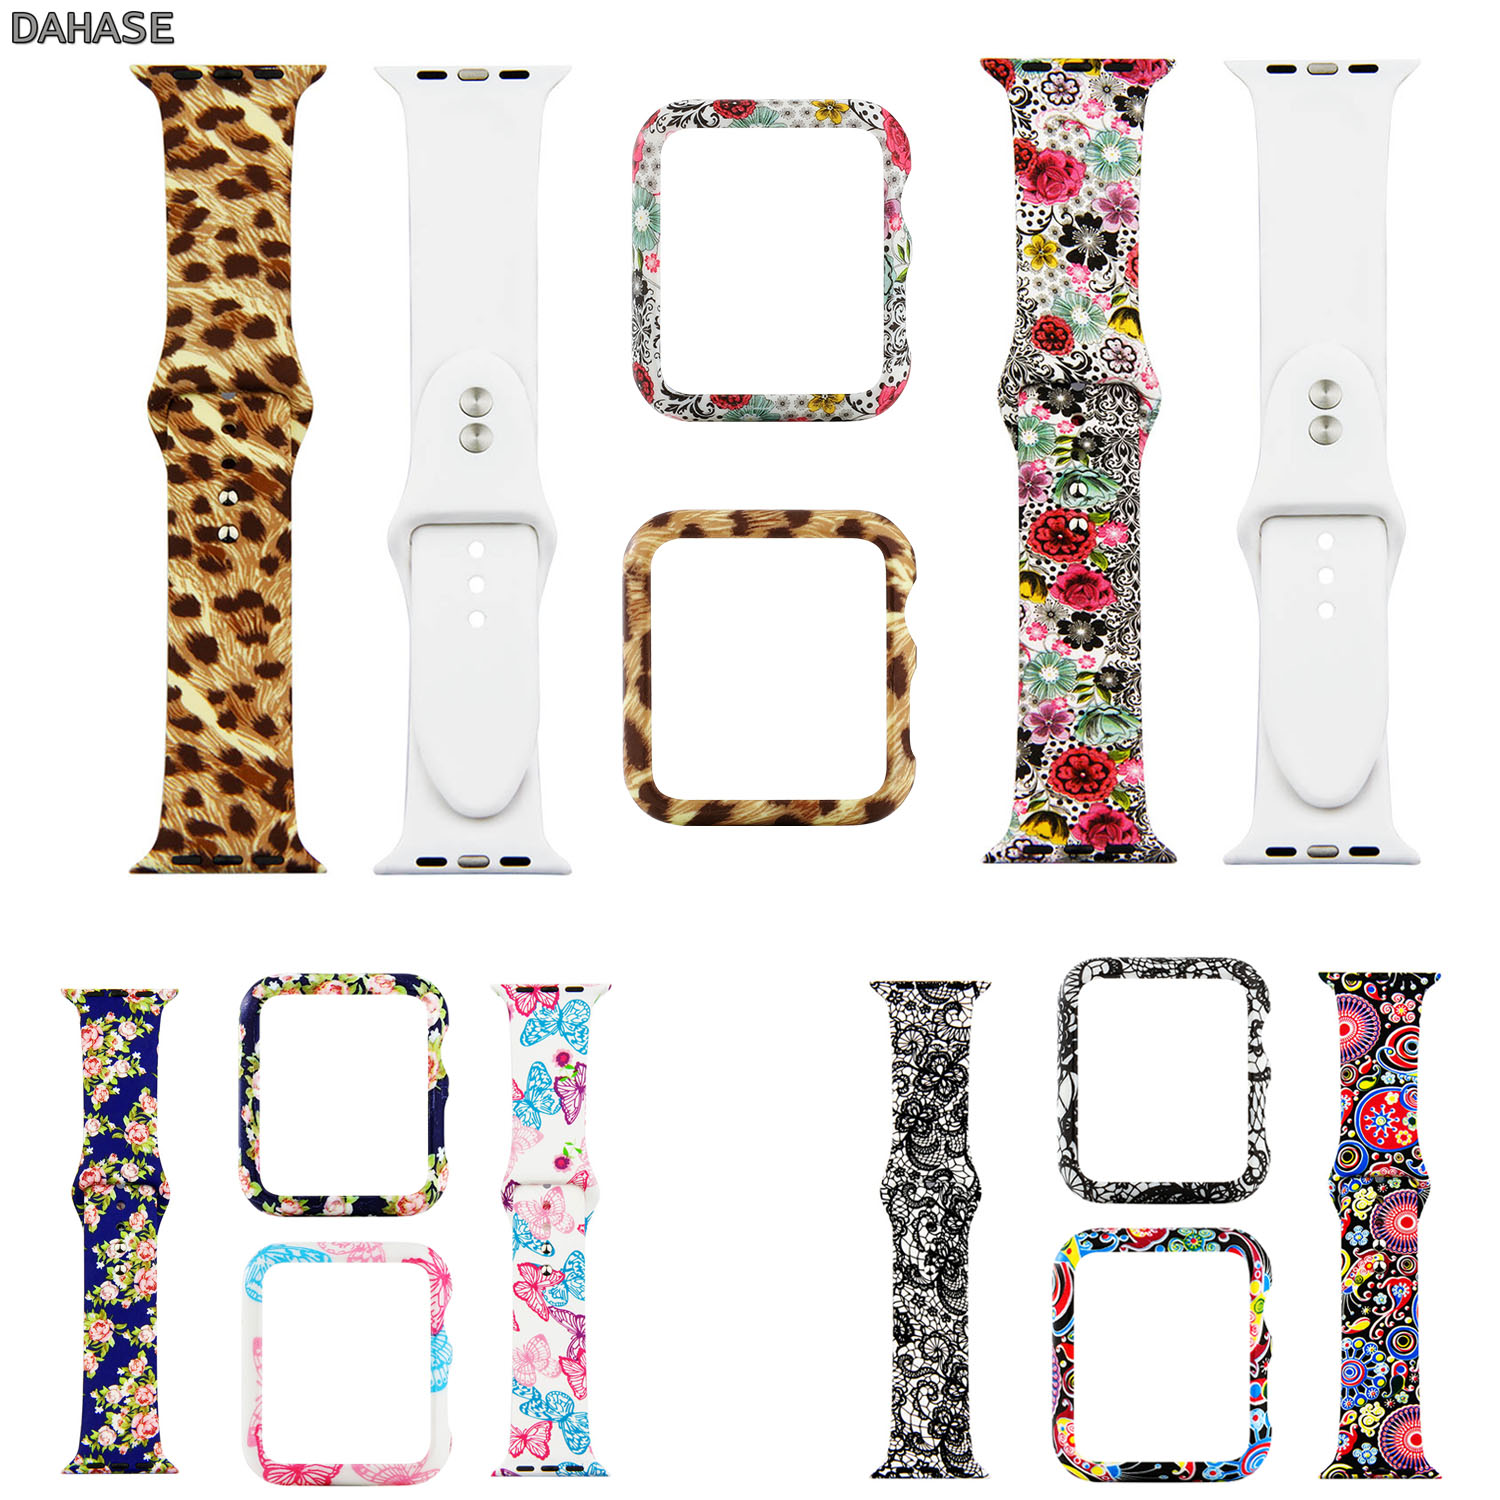 Sport Silicone Band For Apple Watch Band 44mm 40mm Series 4 Cover For IWatch Strap 42mm 38mm Series 3/2/1 Watch Band Case Set